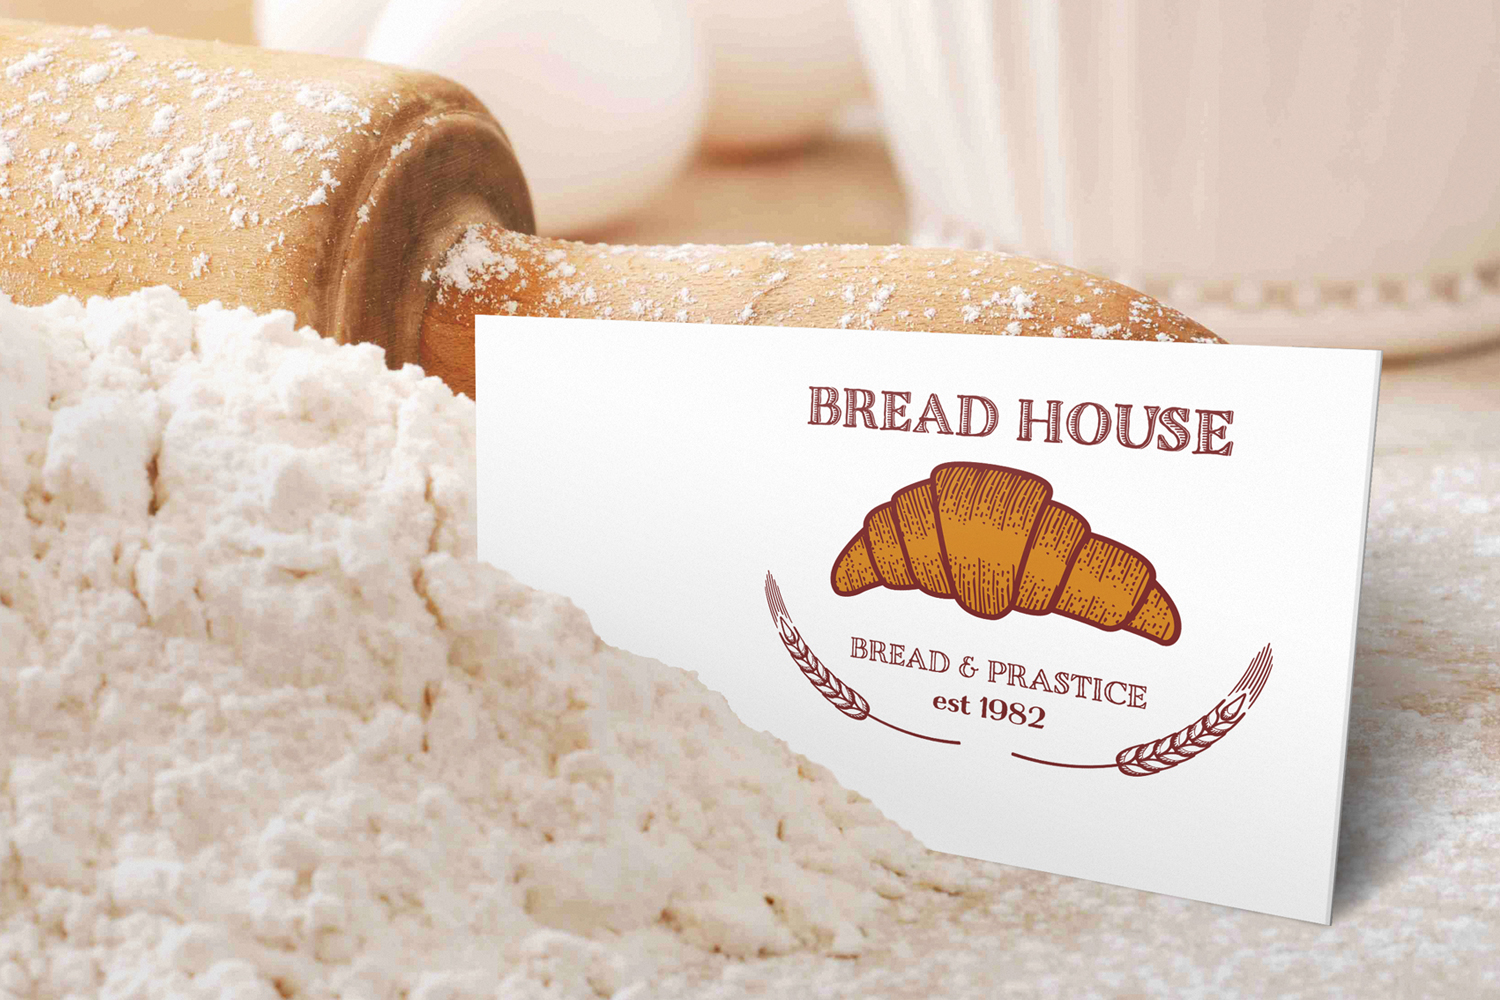 50 Bakery logos with fresh bread example image 3